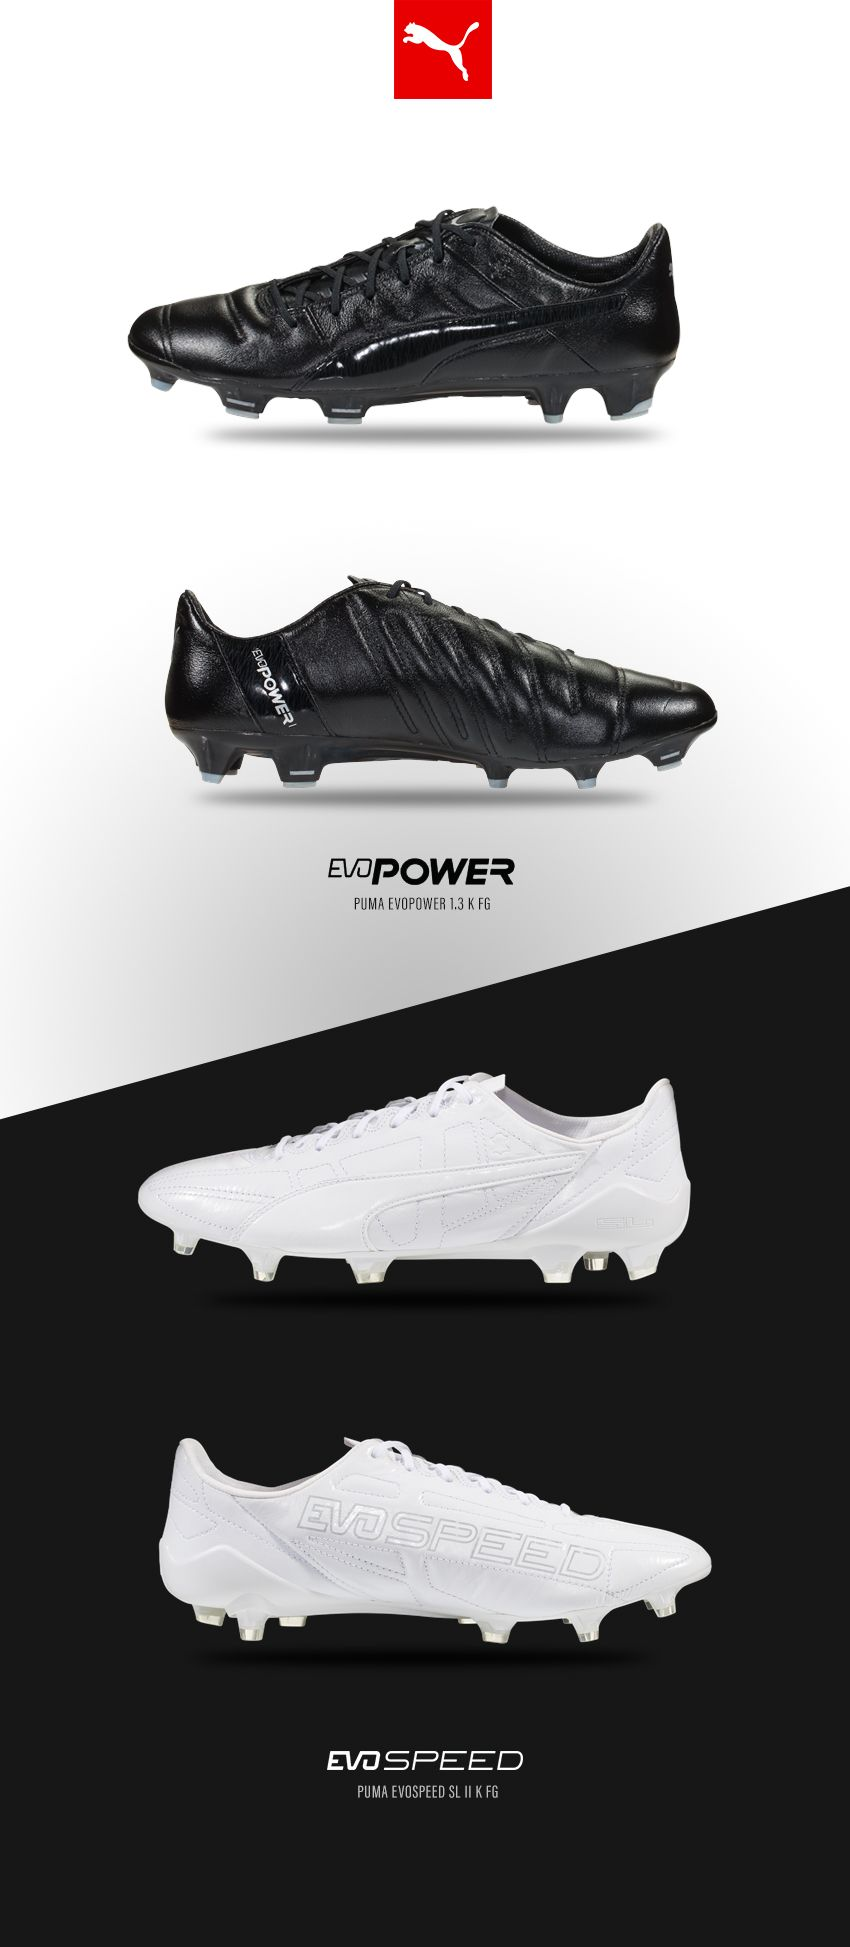 The All New Puma Evopower And Evospeed The Evopower 1 3 K Fg Is Engineered To Optimize The Interaction Between Str Football Shoes Soccer Boots Soccer Cleats